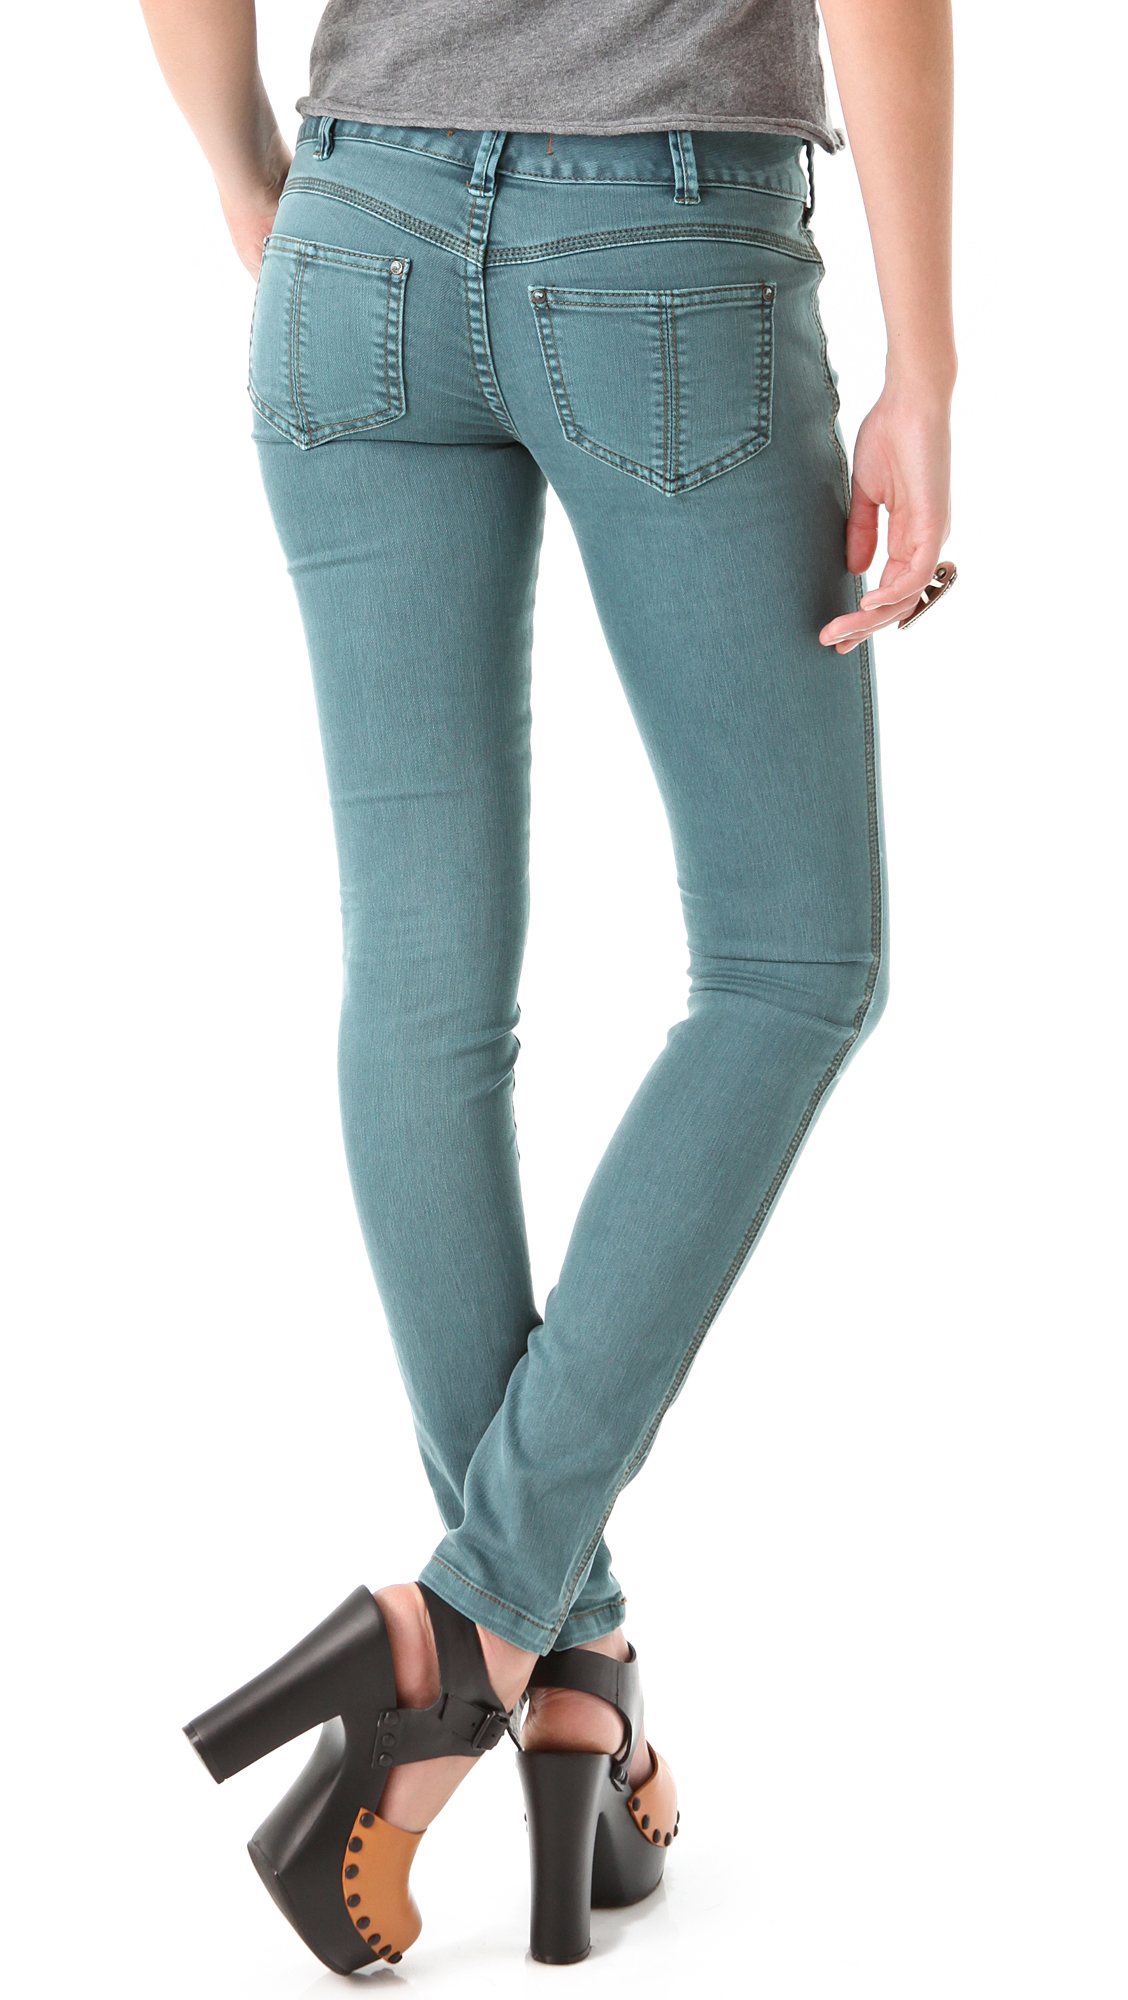 Colored jeans for women from Old Navy are the perfect antidote for a stale closet. Simply switching out your standard old blue or black jeans for one of these inspiring creations. You'll notice a whole new vibe coming from your wardrobe. Purchase a pair for wear right away or .